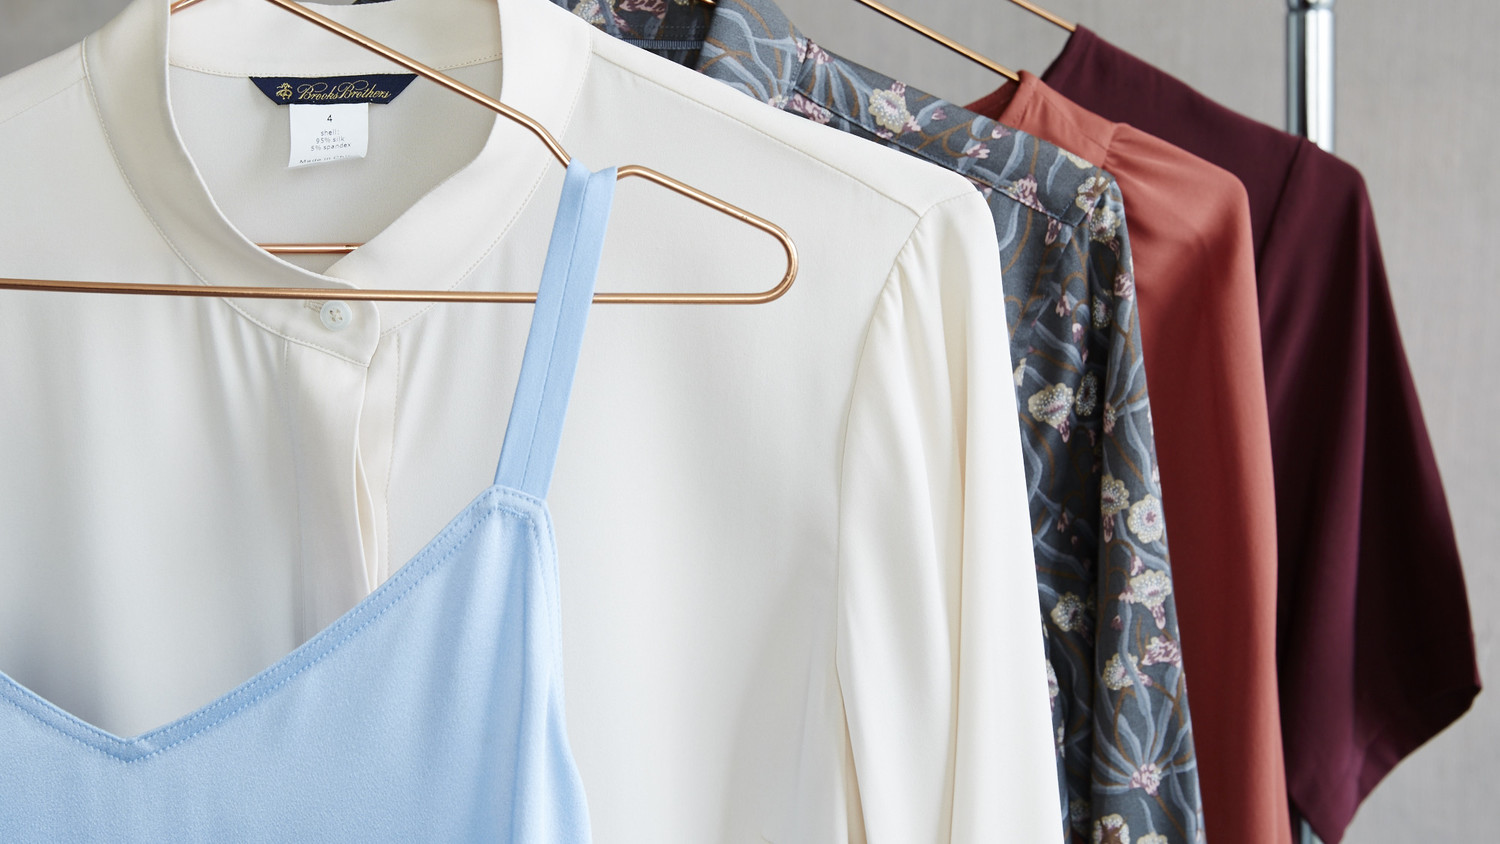 How To Clean And Organize Everything In Your Closet